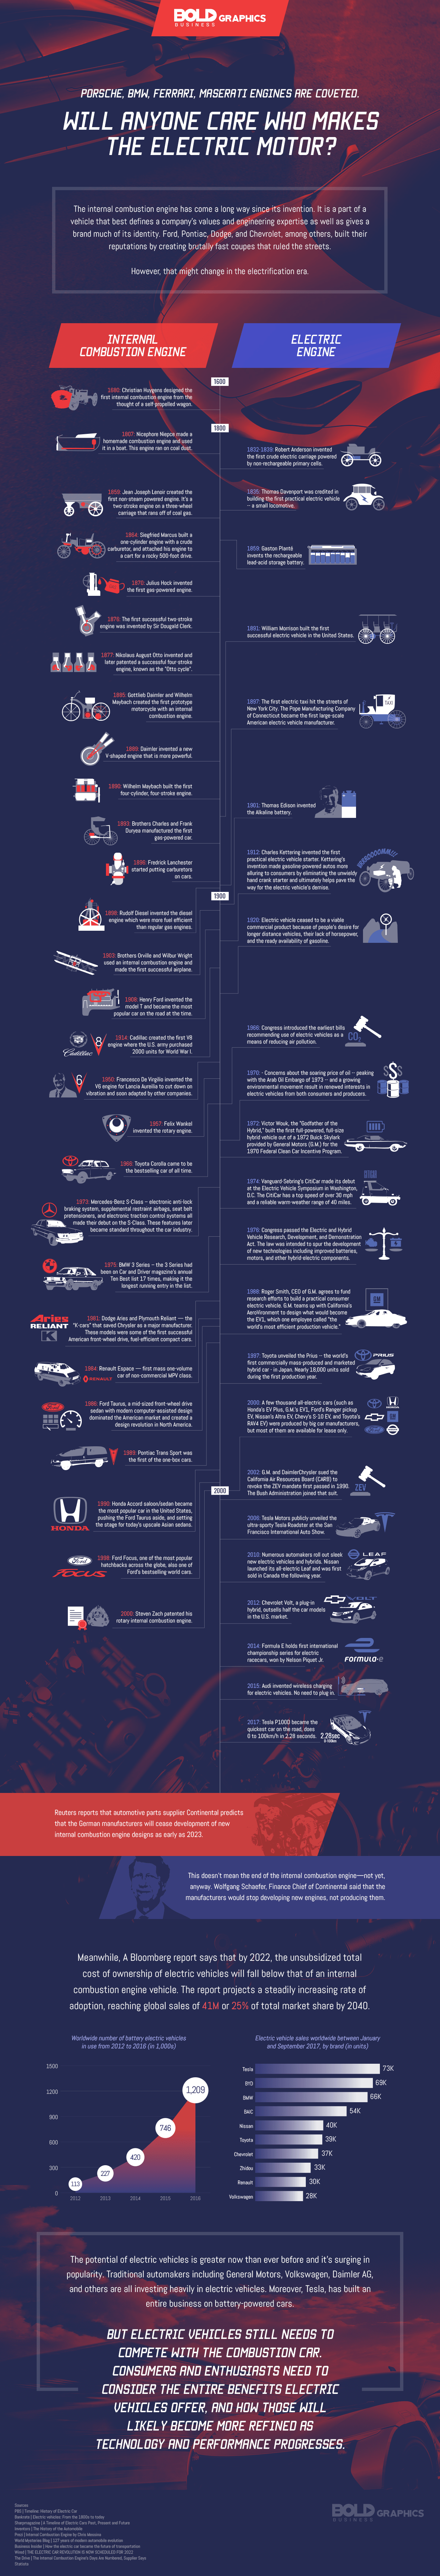 internal combustion engine history vs electric engine history infographic